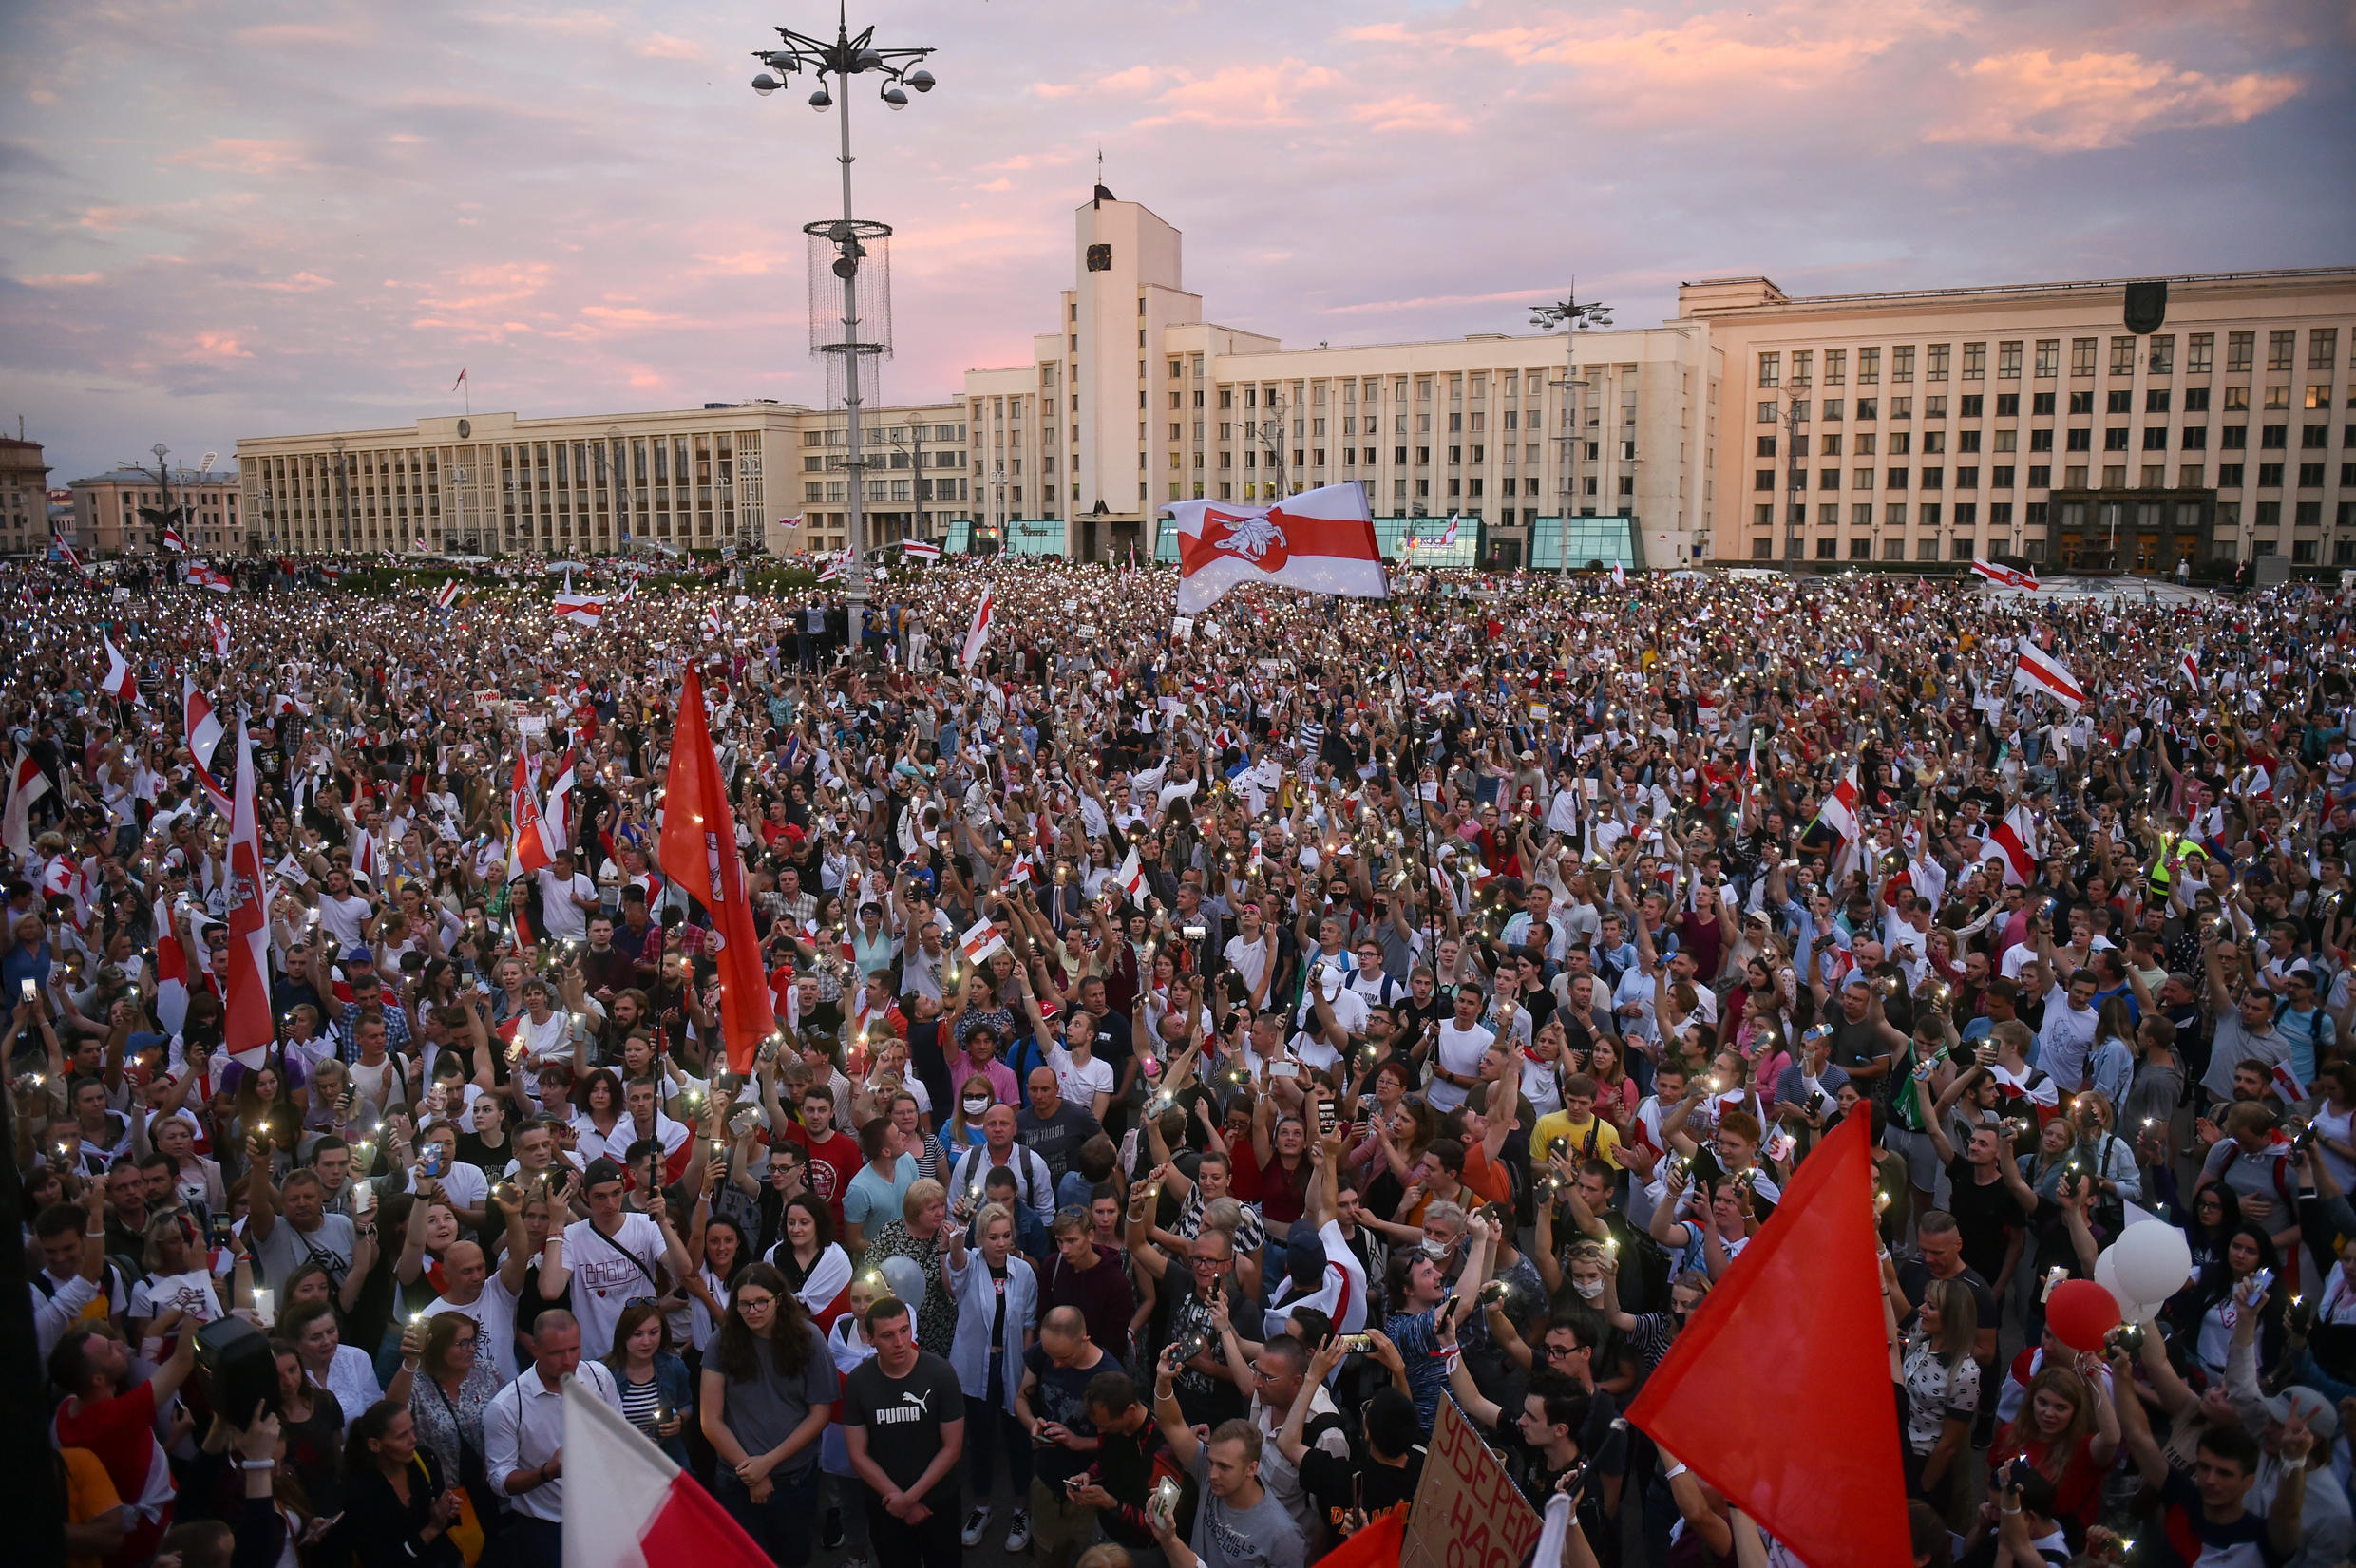 Belarus opposition supporters have staged a wave of protests against the election results